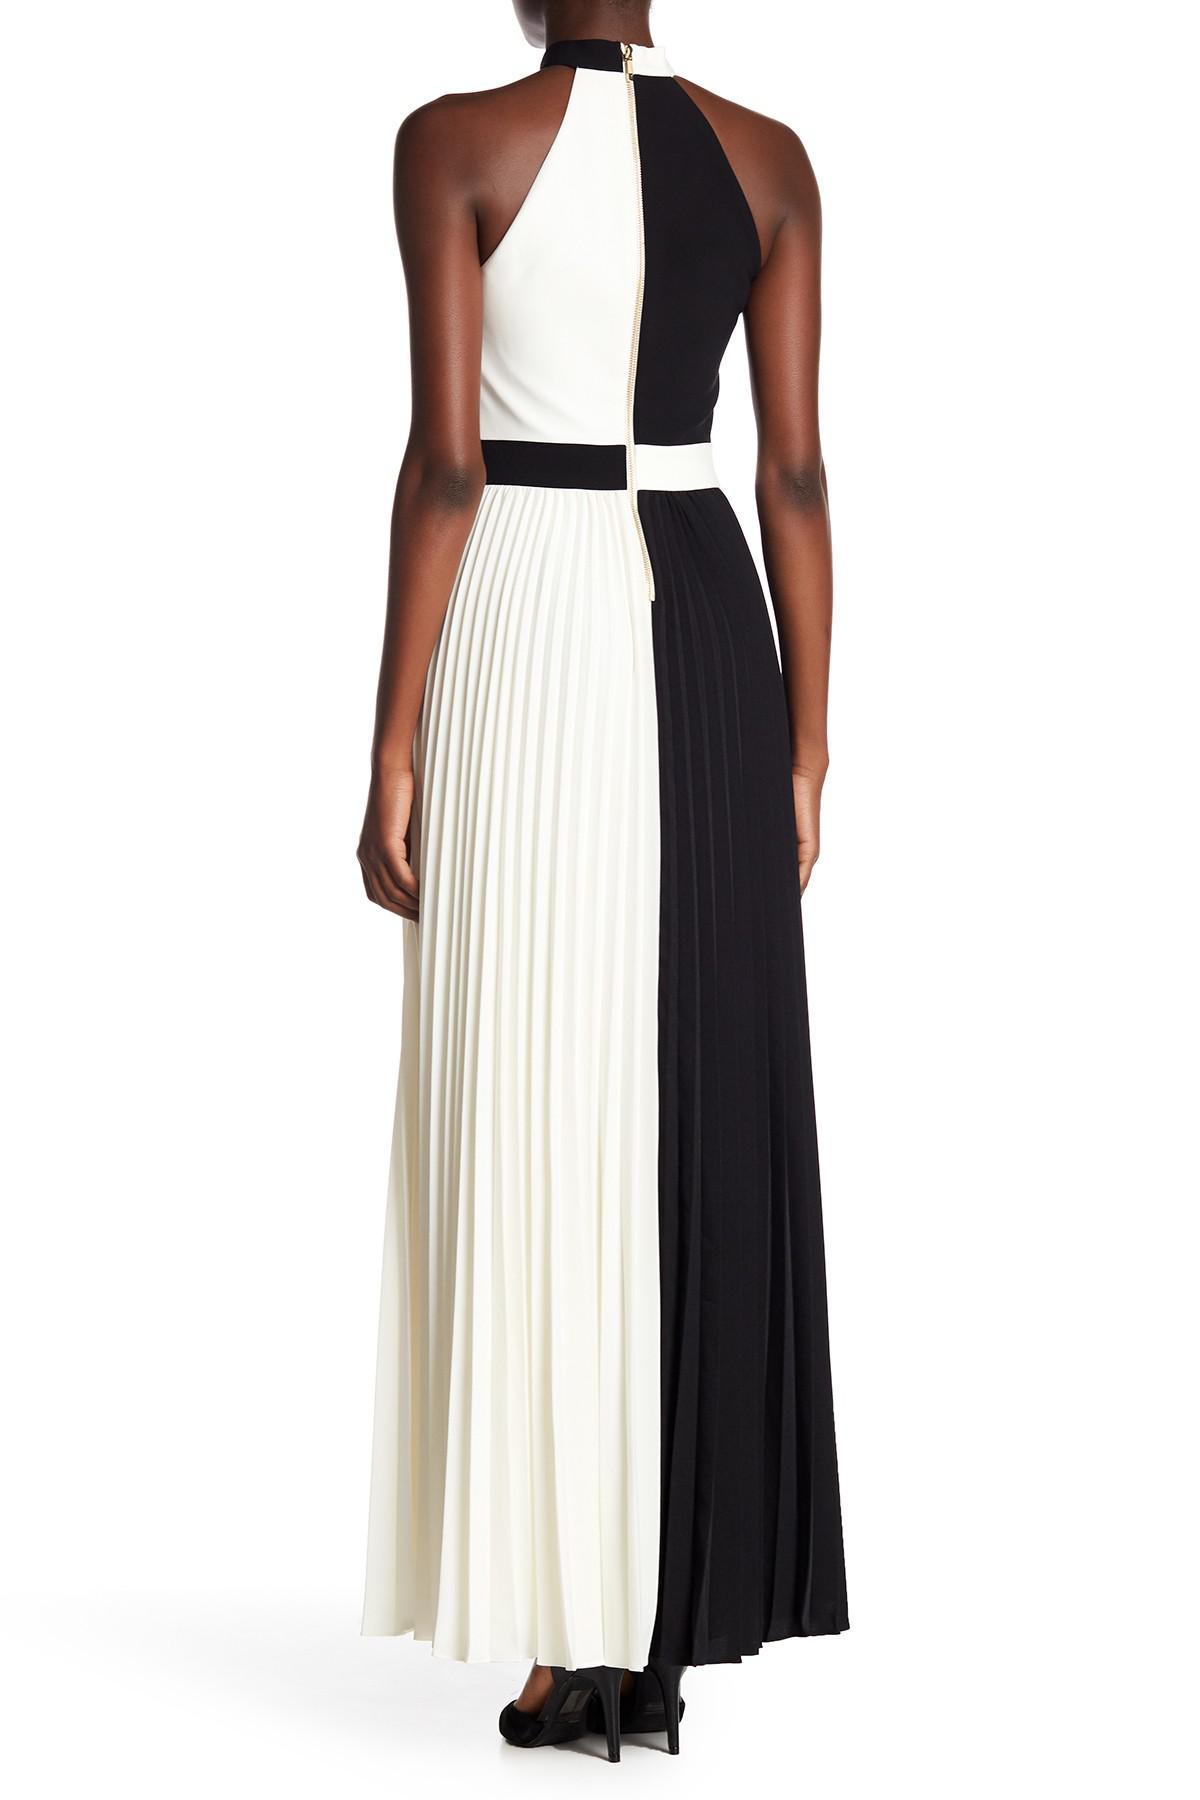 9ae73c092 Lyst - Ted Baker Lixia Colorblock Pleated Maxi Dress in Black